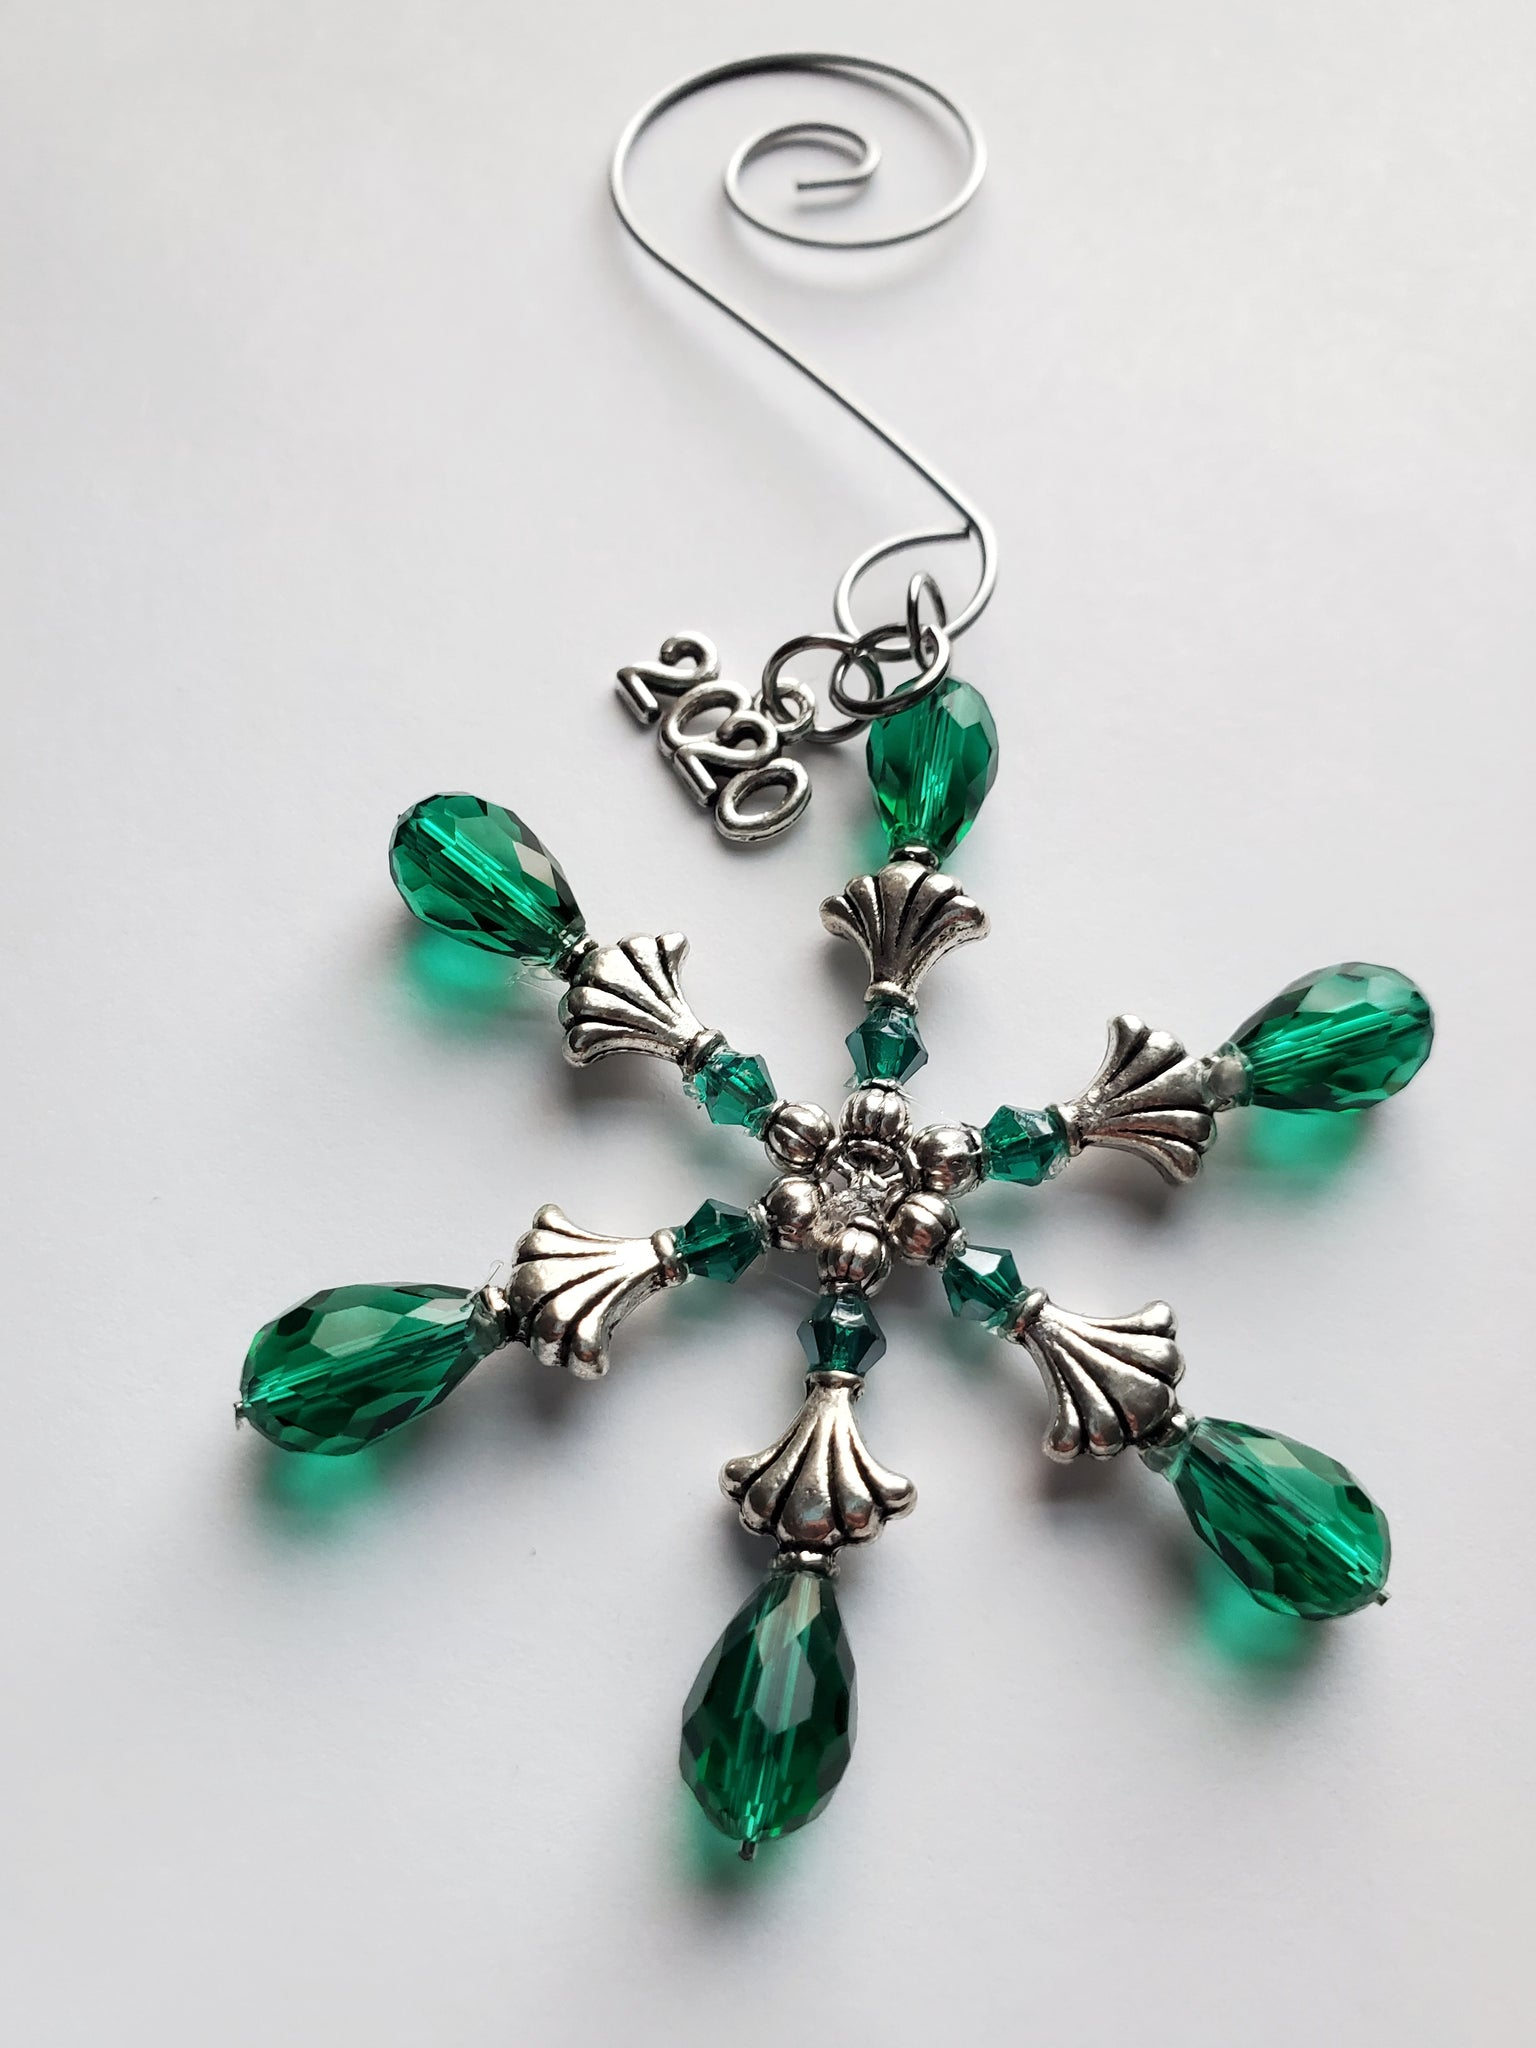 Emerald Green Crystal Snowflake Ornament Handmade Gift Stocking Stuffer